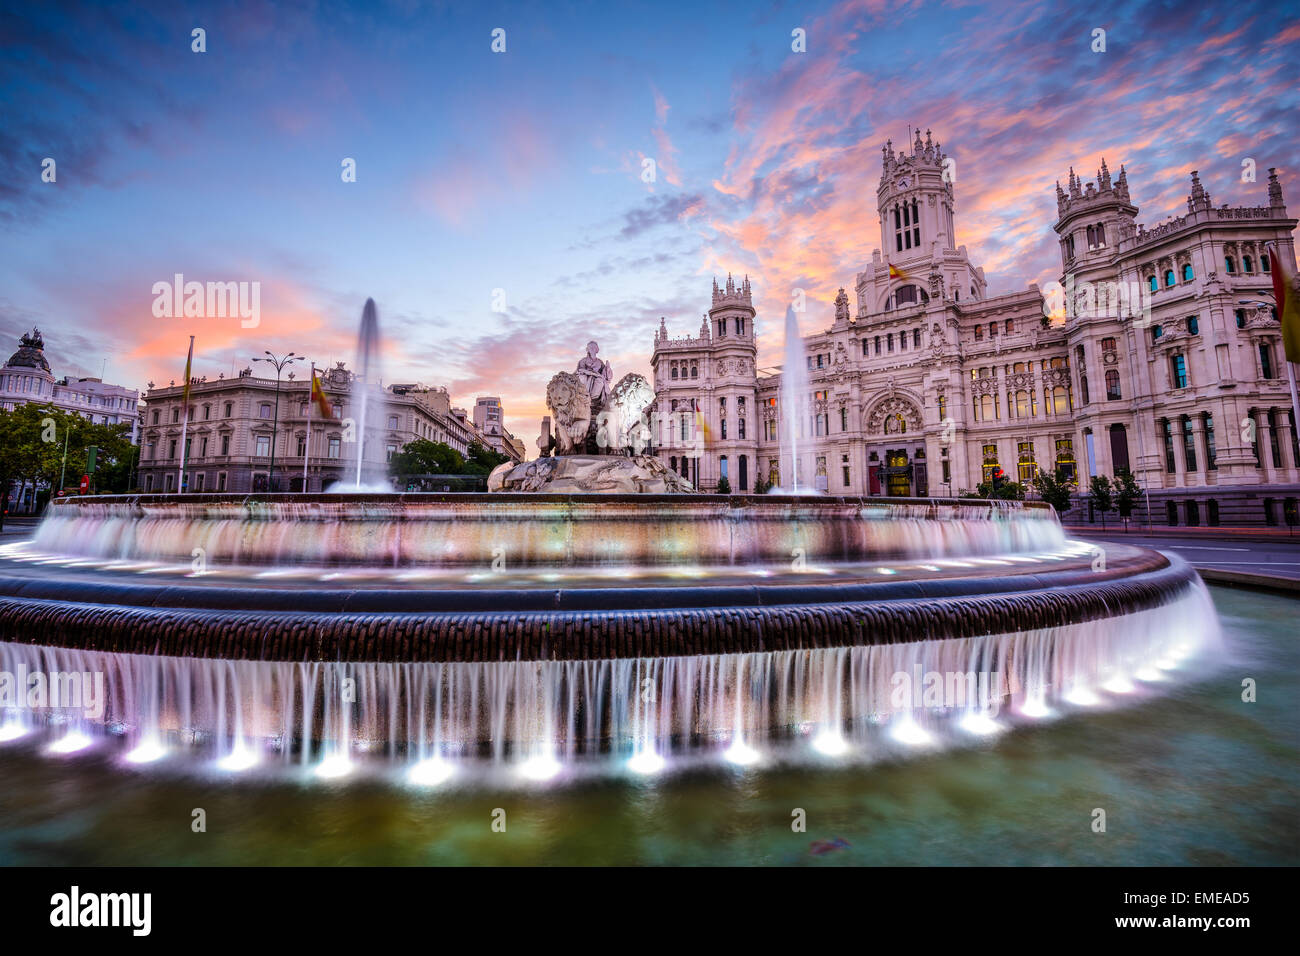 Madrid, Spain at Plaza de Cibeles. - Stock Image